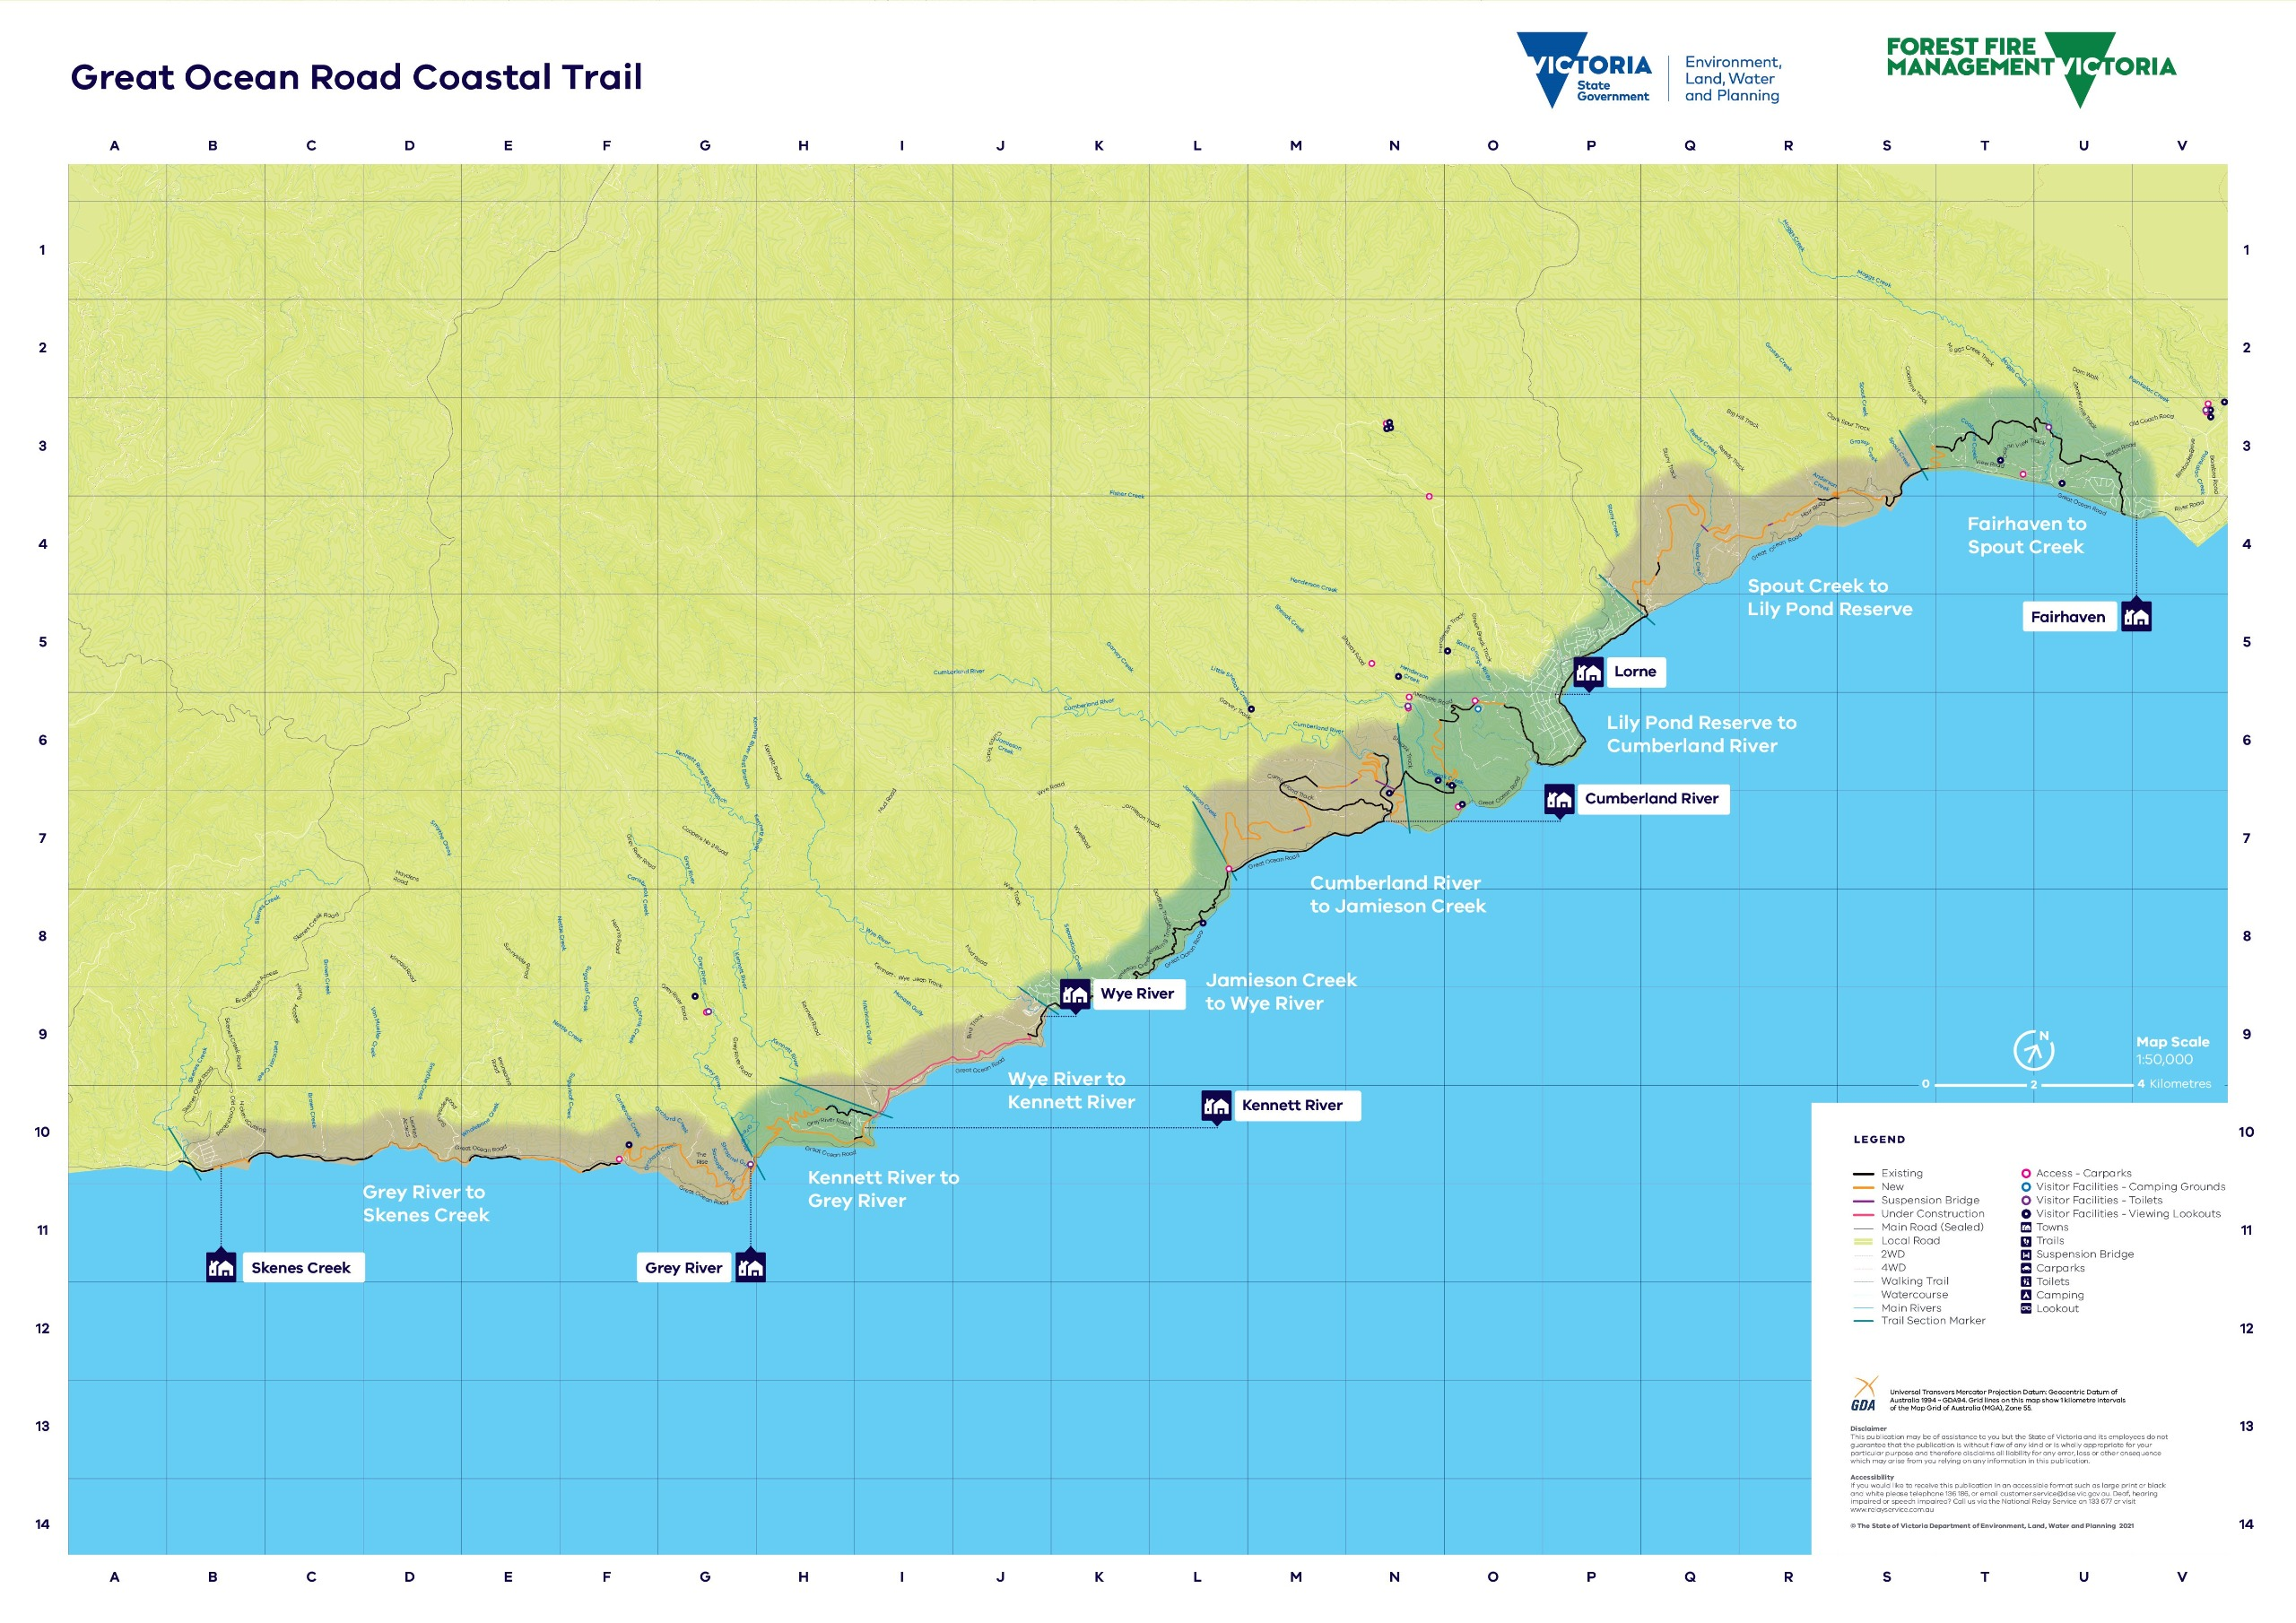 Illustrated map showing the entire proposed route of the Great Ocean Road Coastal Trail from Fairhaven to Skenes Creek. This shows towns along the way, trail sections and new vs existing trail.